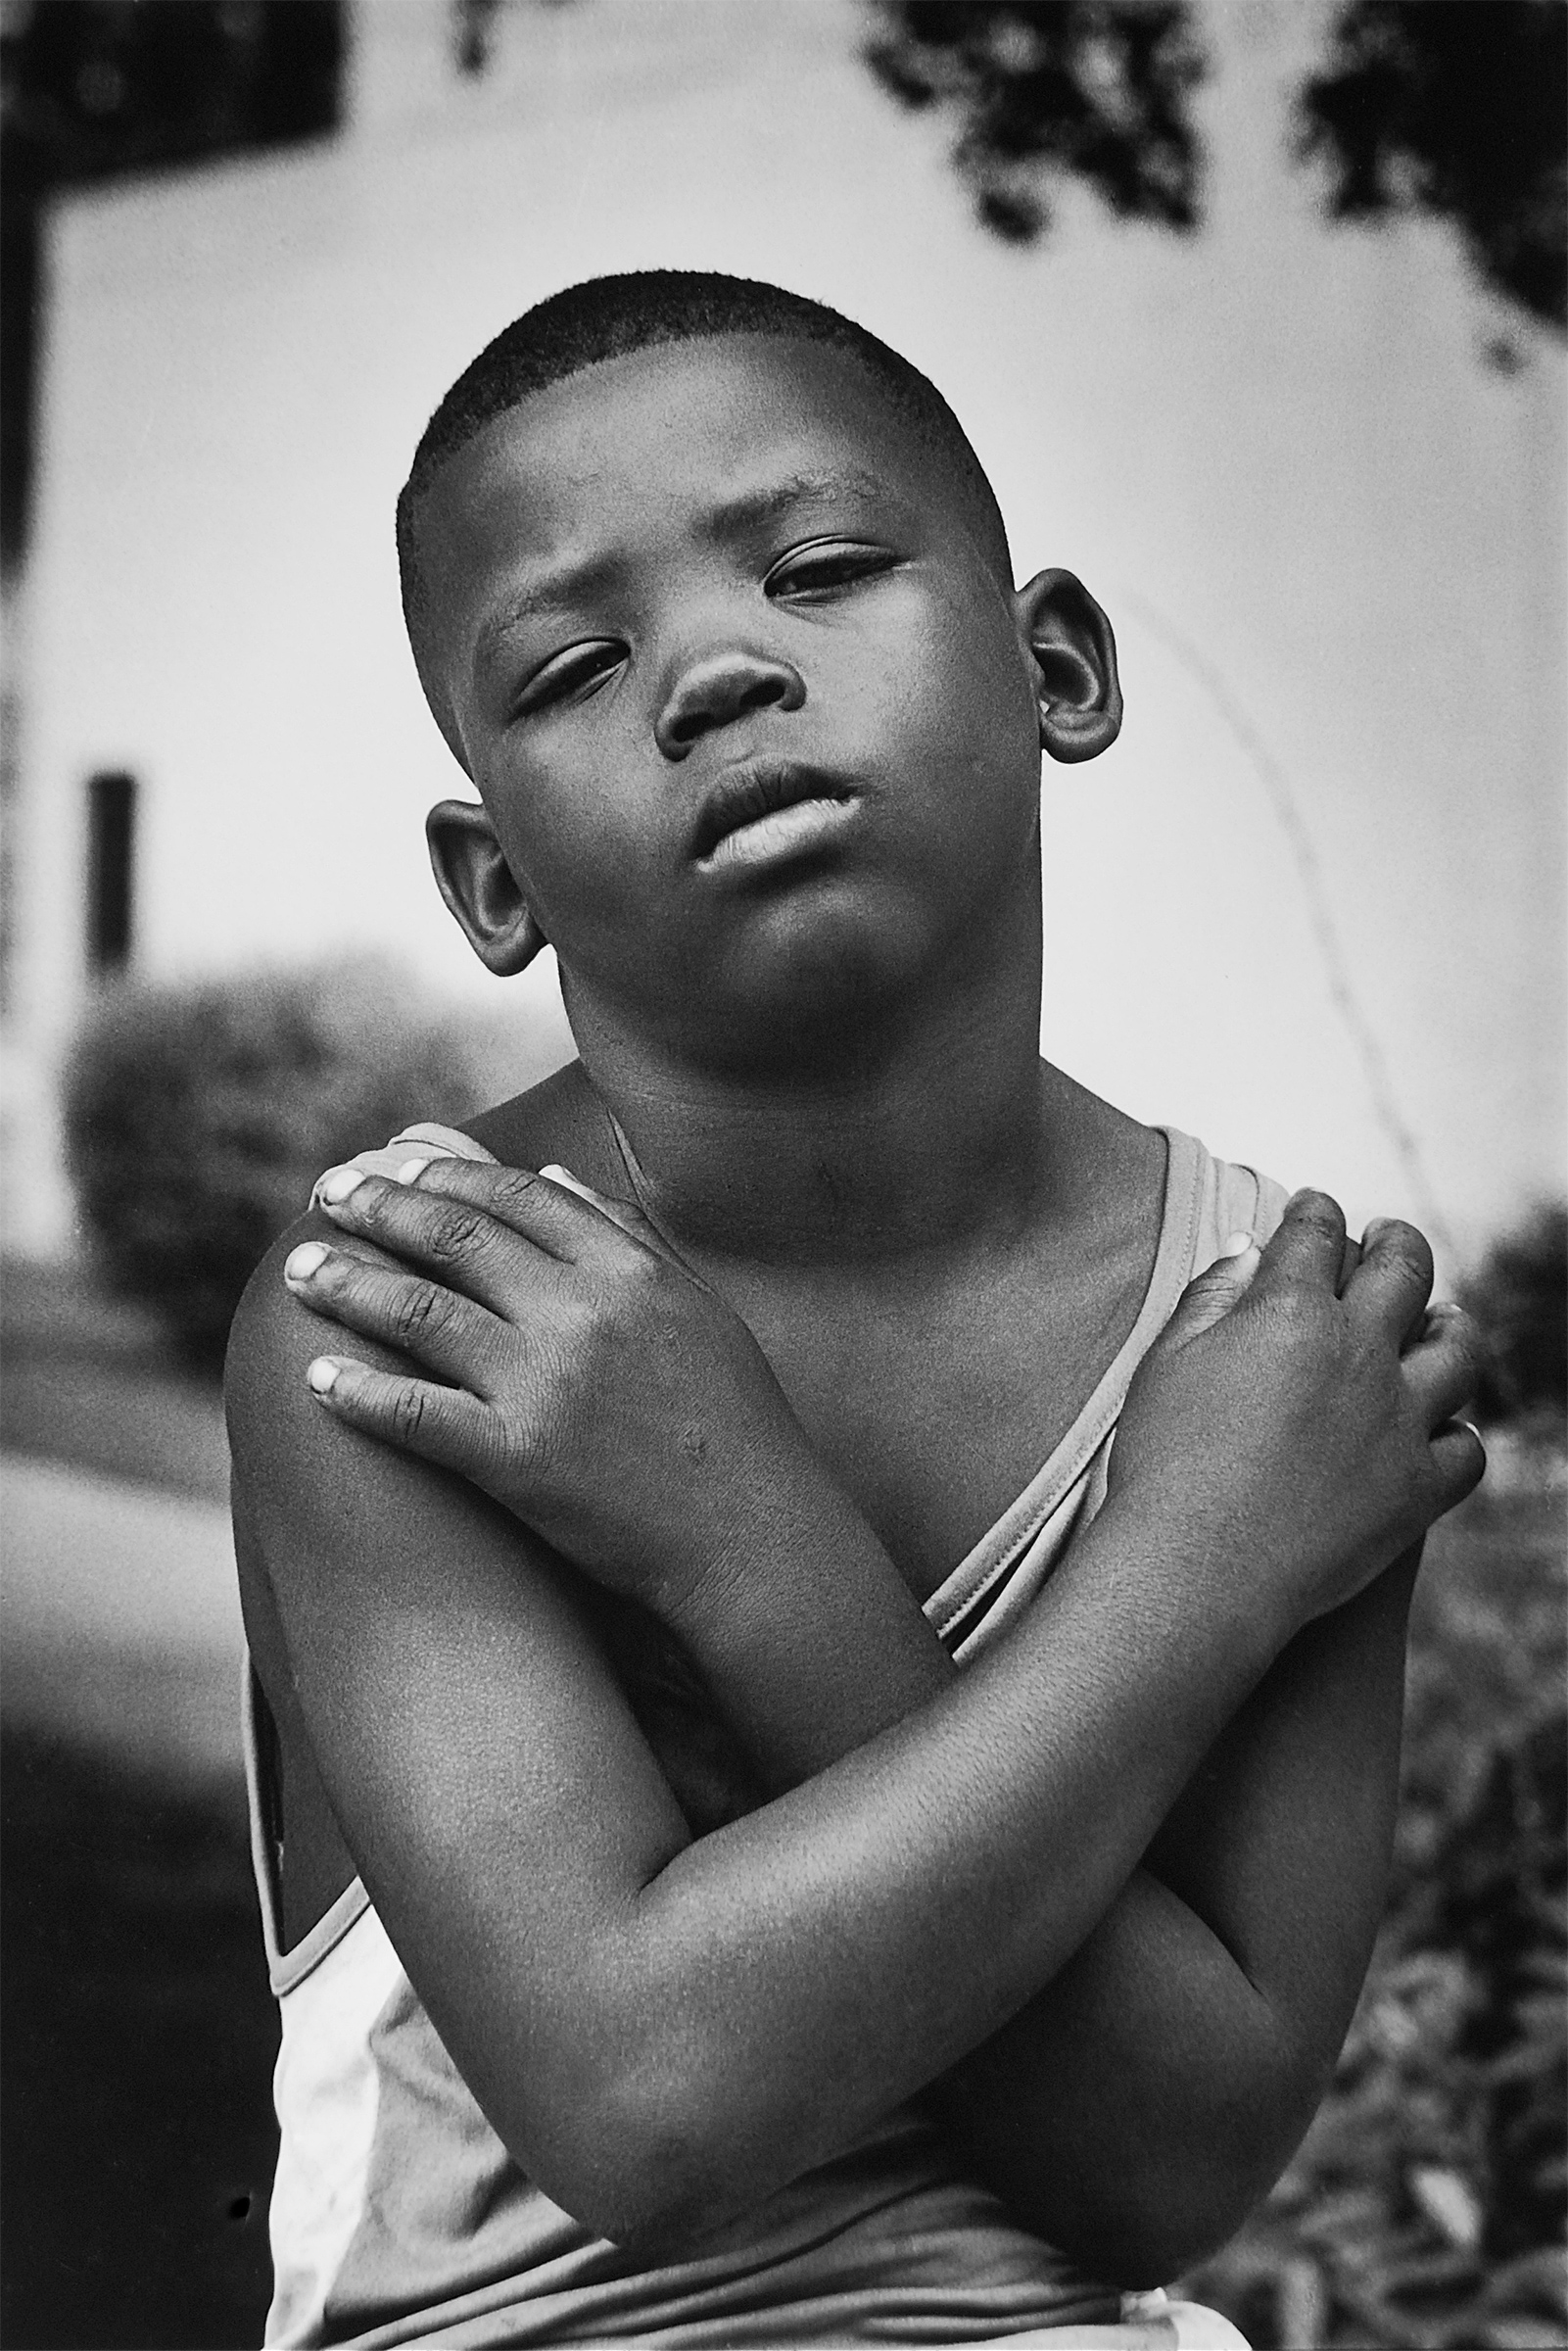 """All Kings Were Boys (1989). """"I want my photos to remind people of something or someone familiar and identify with it in some way,"""" says Hudnall. """"There is no greater gift."""""""